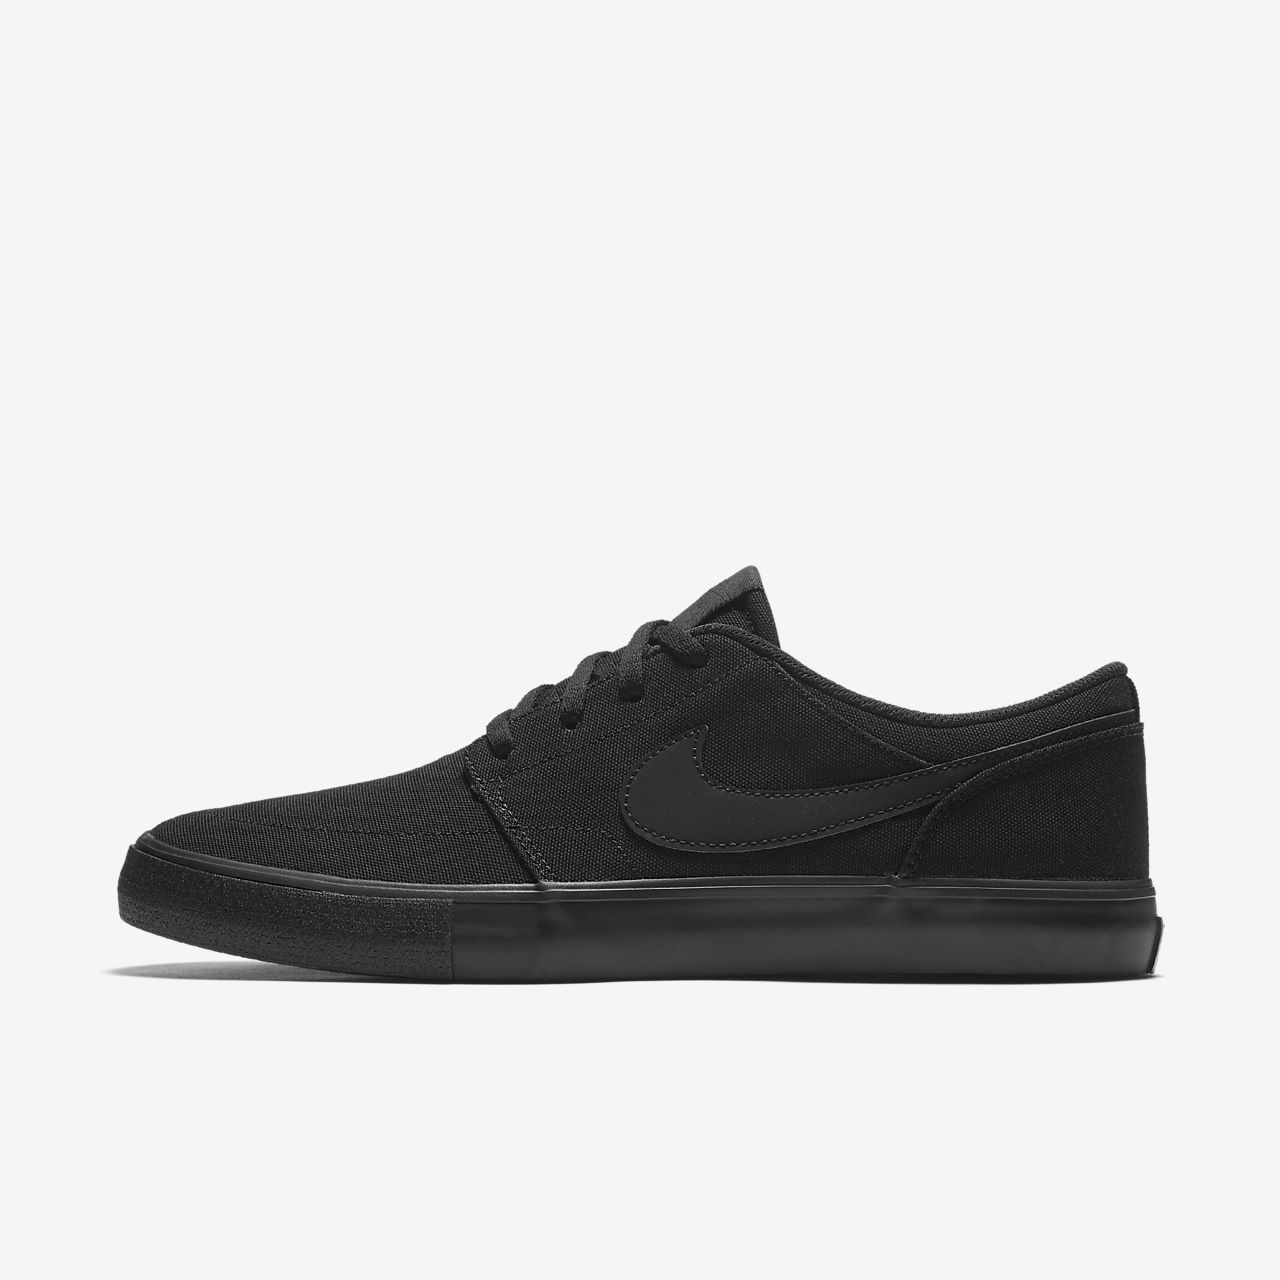 Nike Chaussures basses SB Solarsoft Portmore II Canvas